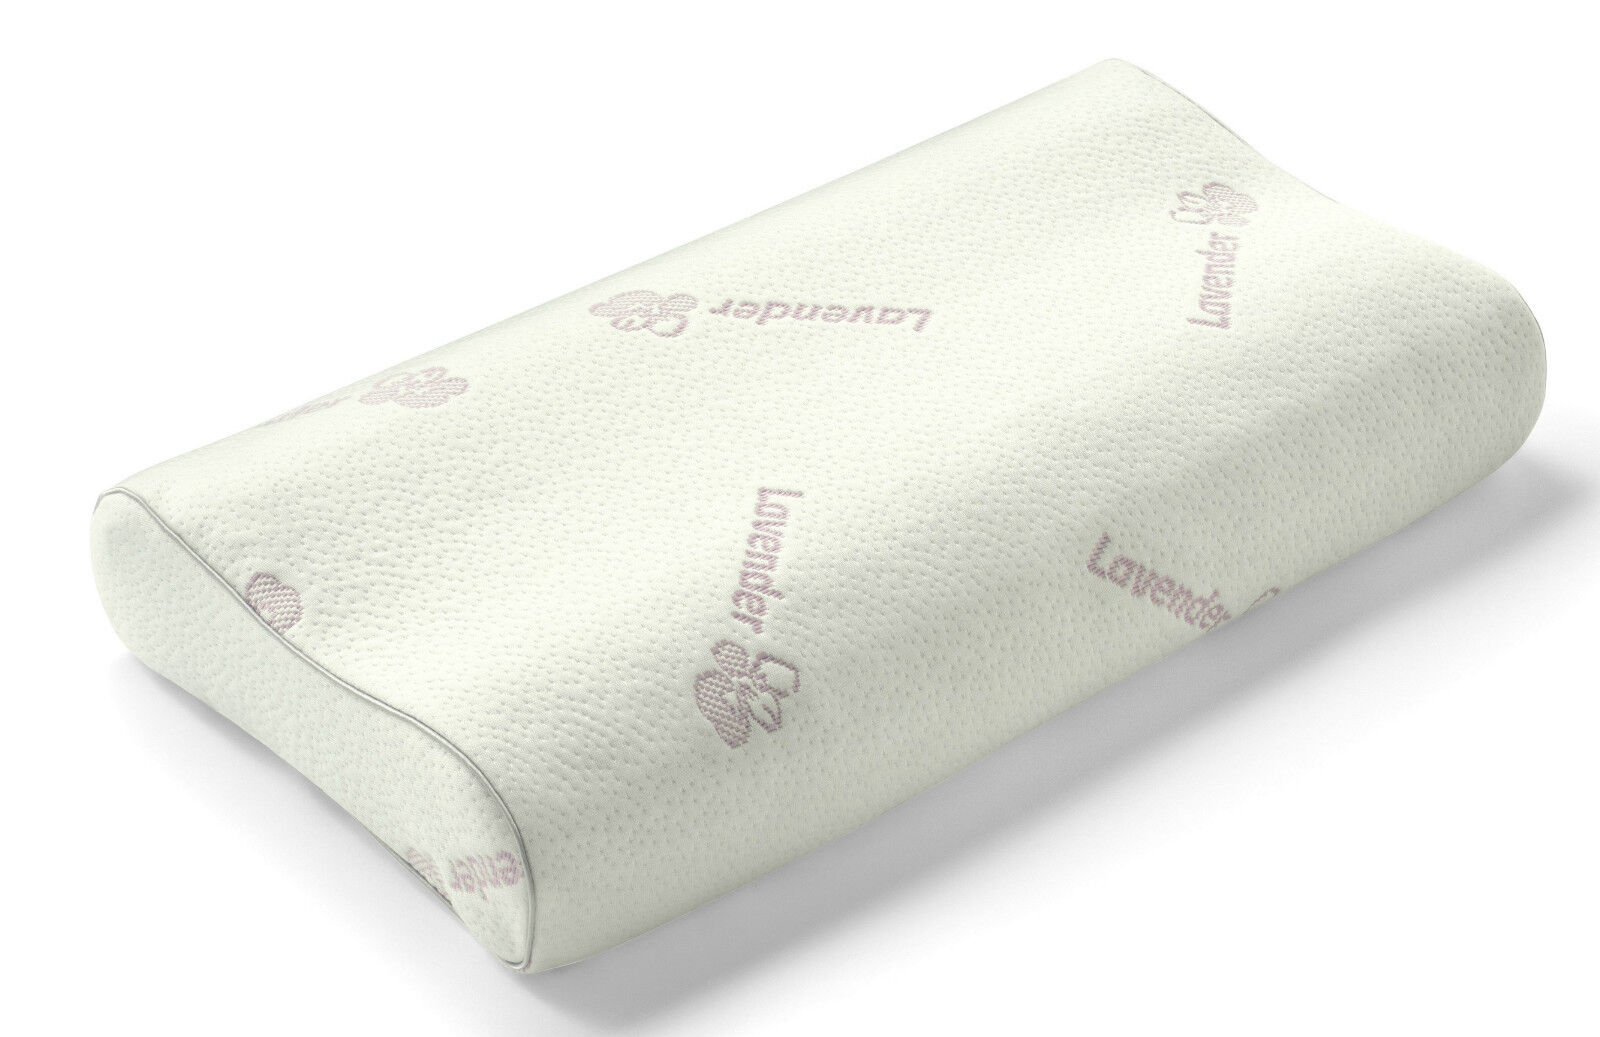 Contour Latex & Lavender Pillow Breathable Hypoallergenic Orthopedic Support